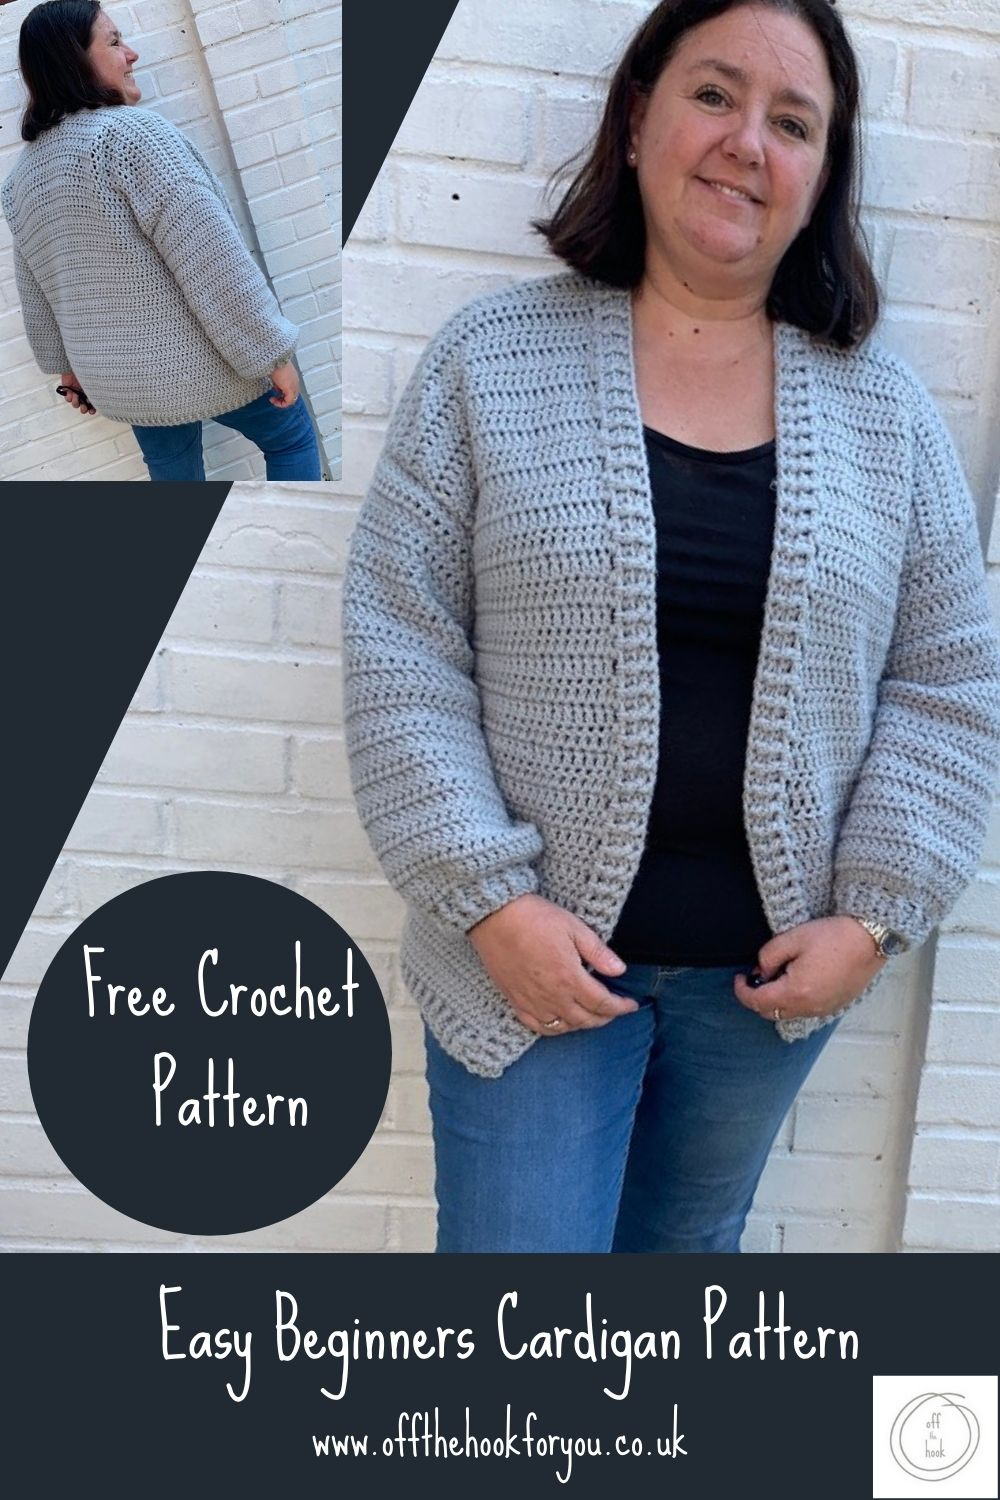 Quick and Easy Crochet Cardigan Pattern - Size Inclusive